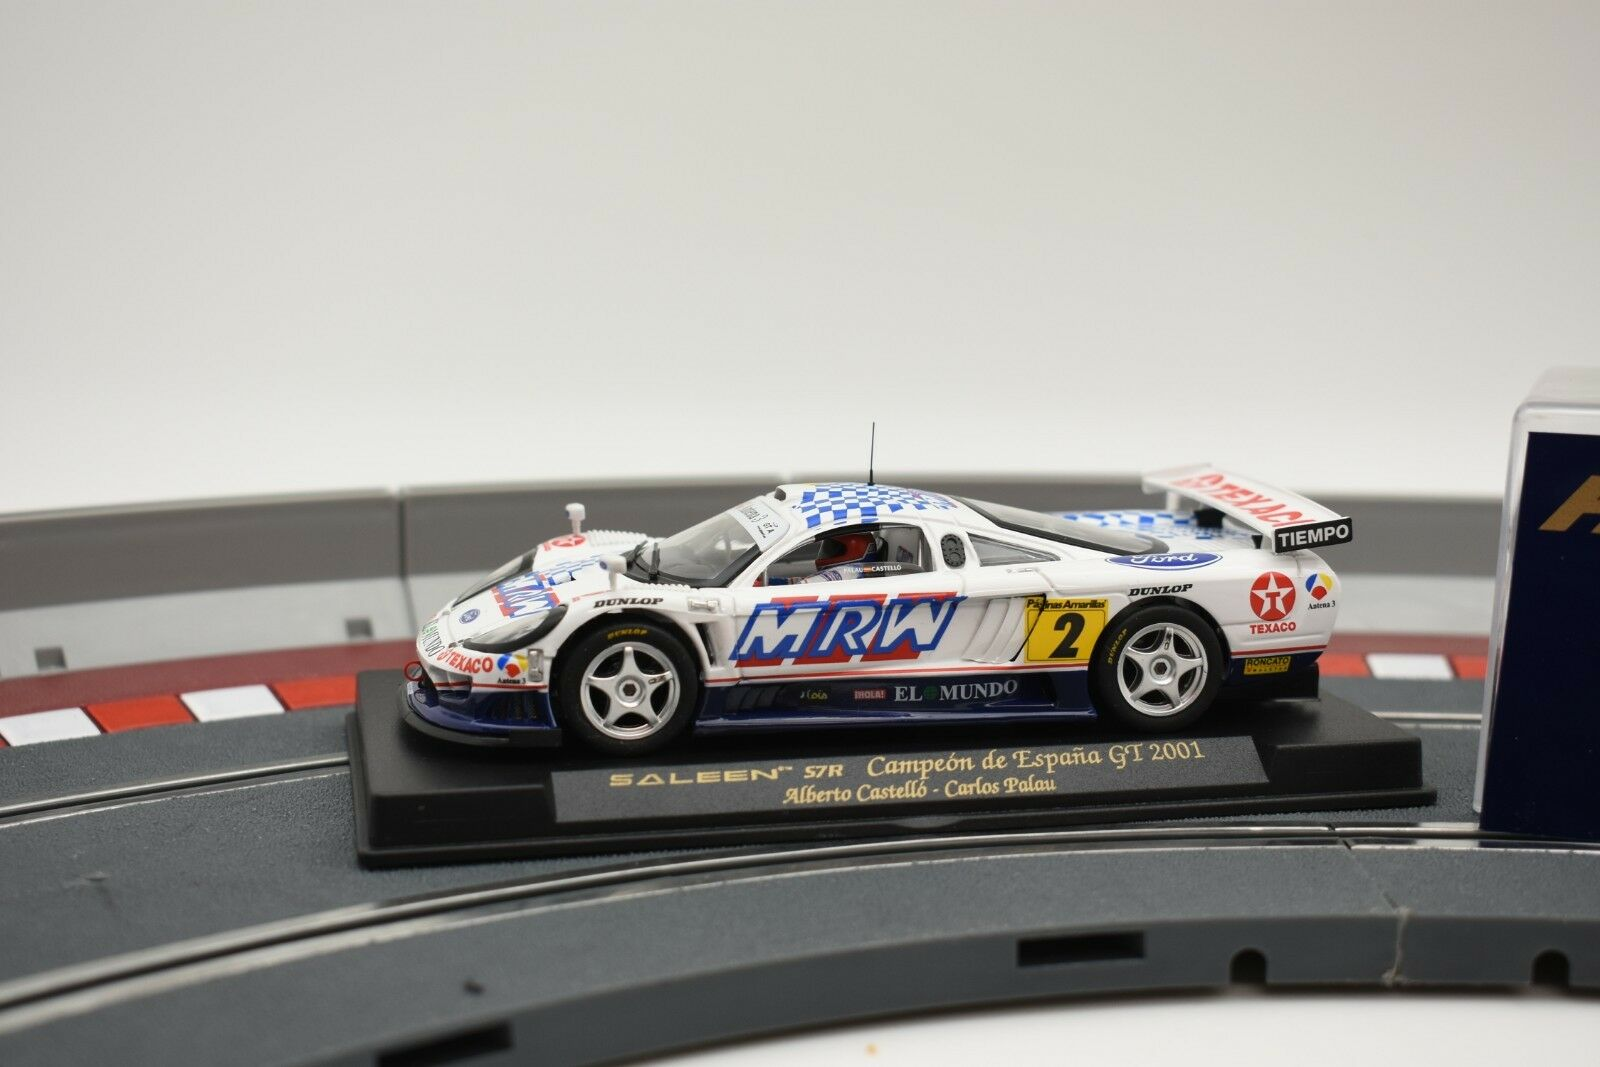 88020 FLY CAR MODEL 1 32 SLOT CAR SALEEN S7R CAMPEON DE ESPANA GT 2001 A267